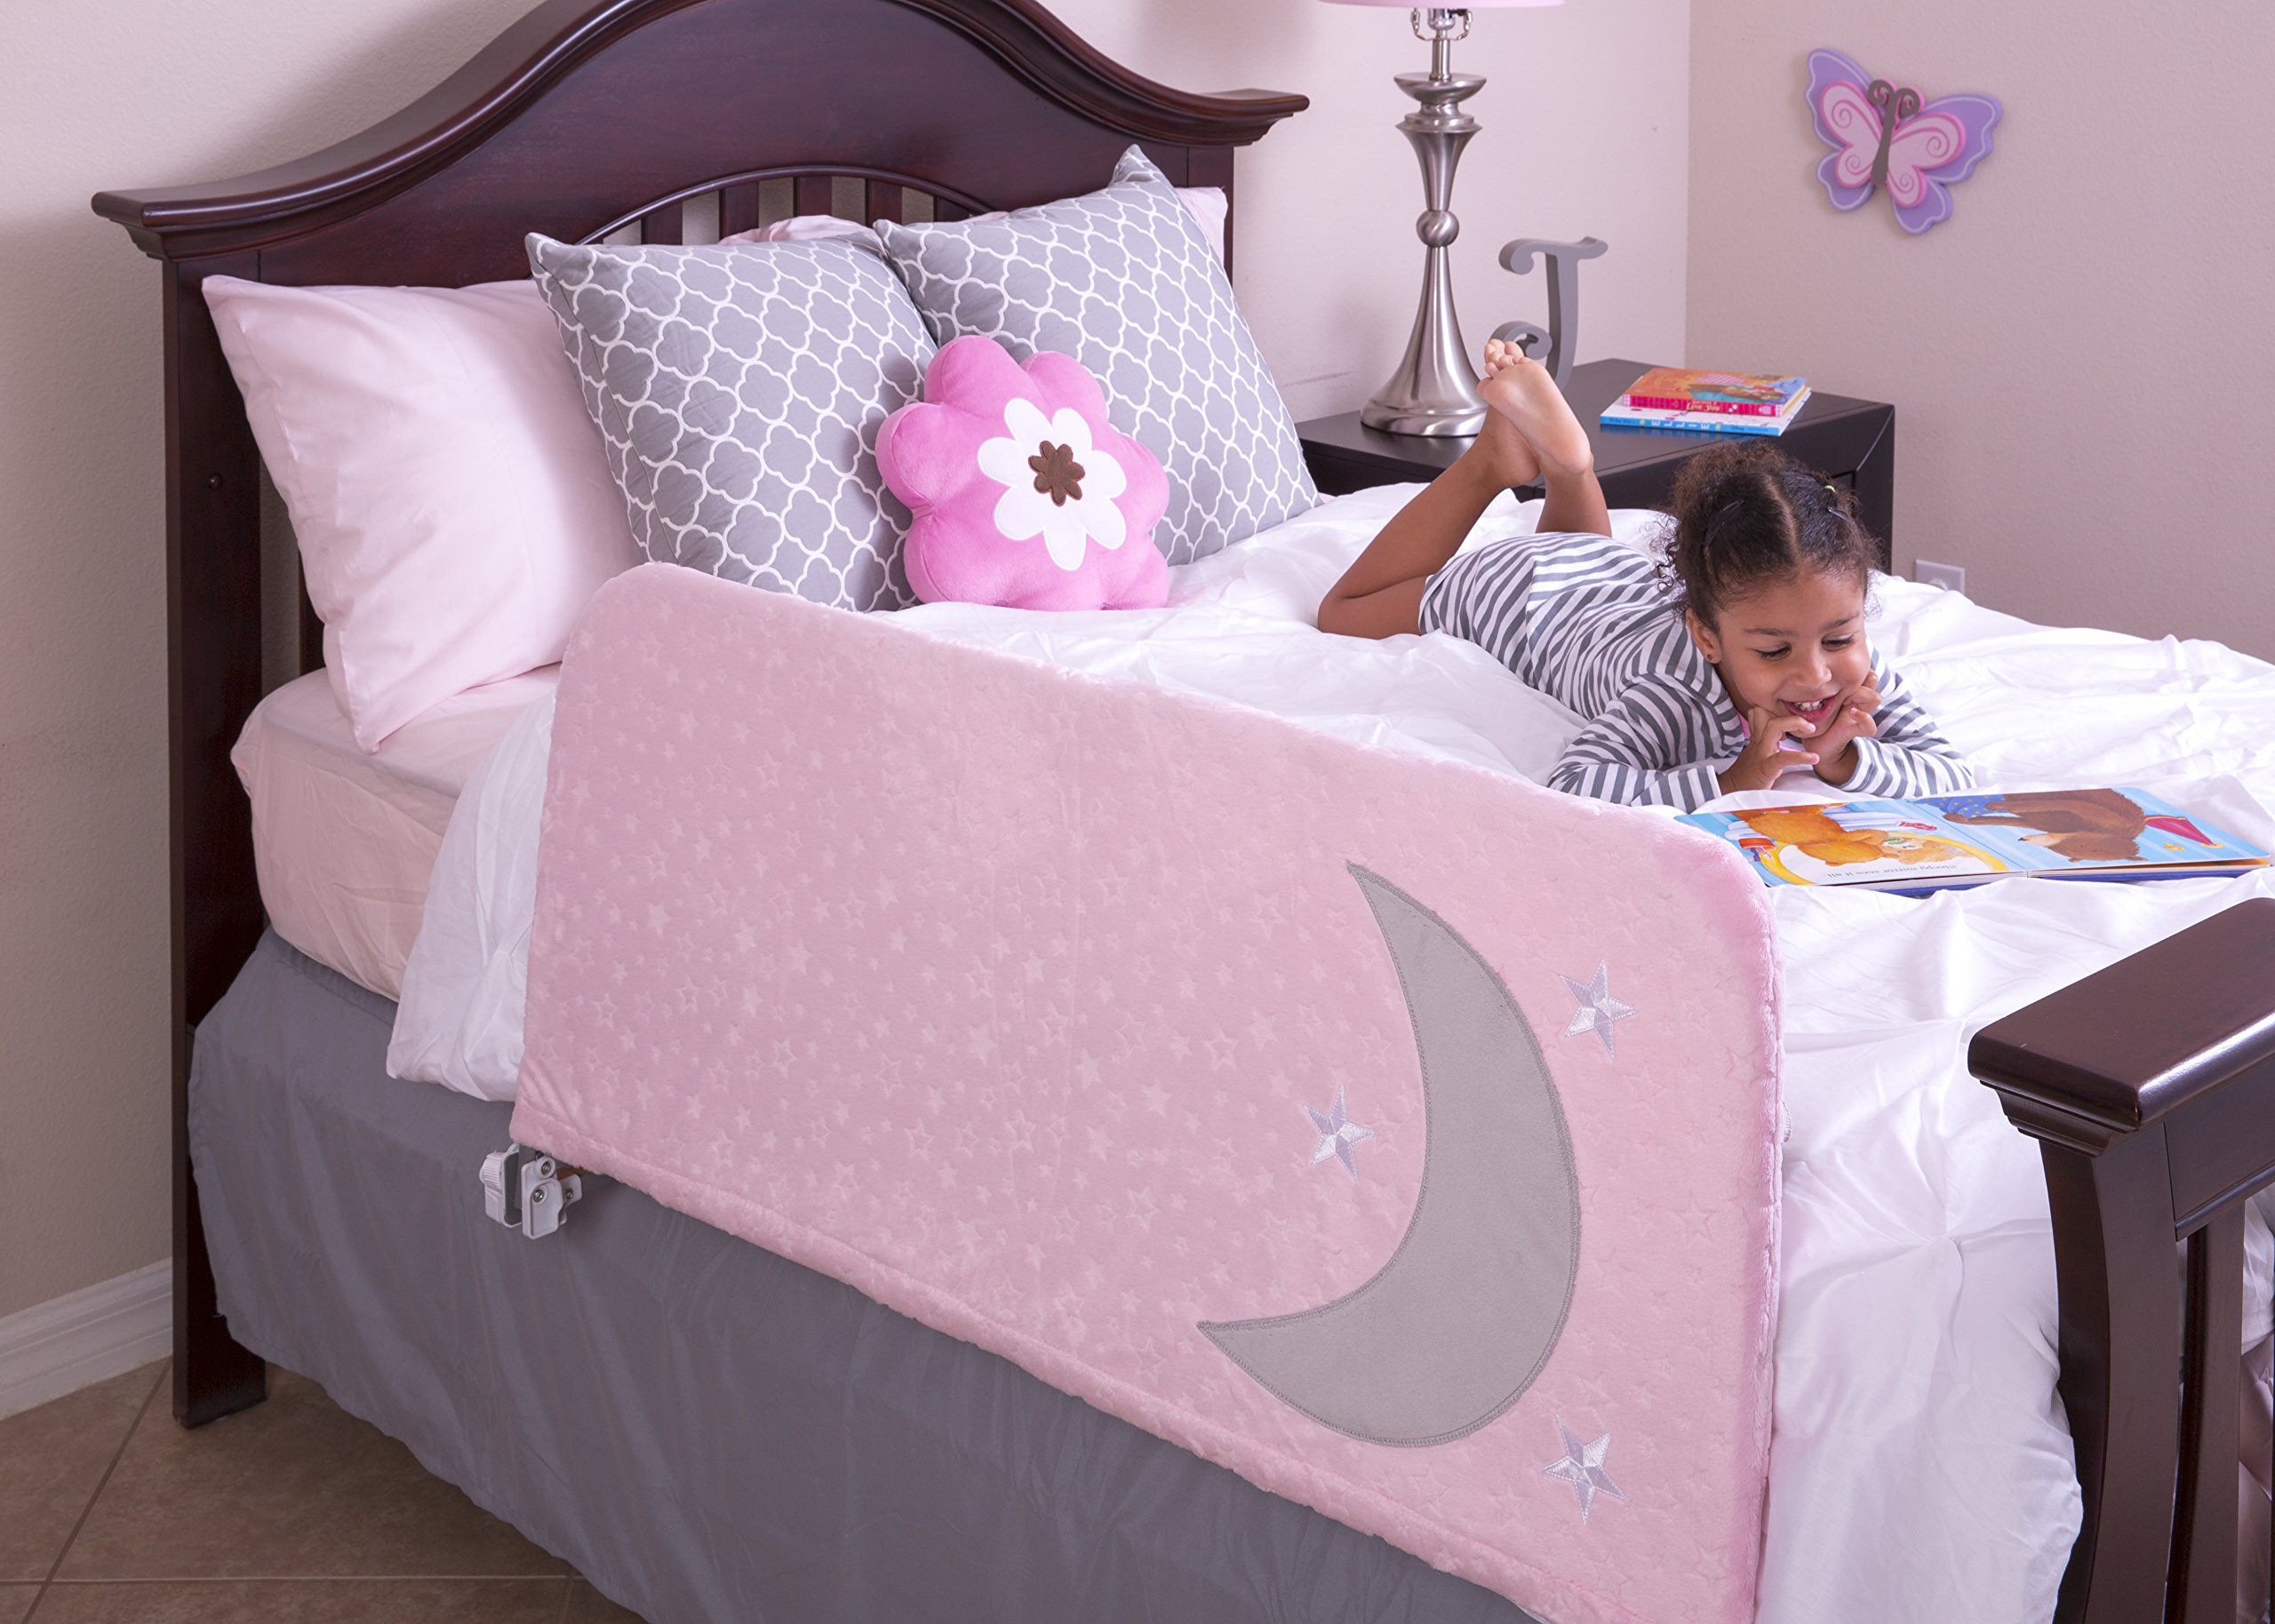 Cosie Covers l Bedrail Cover for Toddlers and Kids Guardrails | with Inside Pocket for Toys and Books - Enhances Appearance of Portable Child Safety Side Rails (Twinkle Pink, Small)